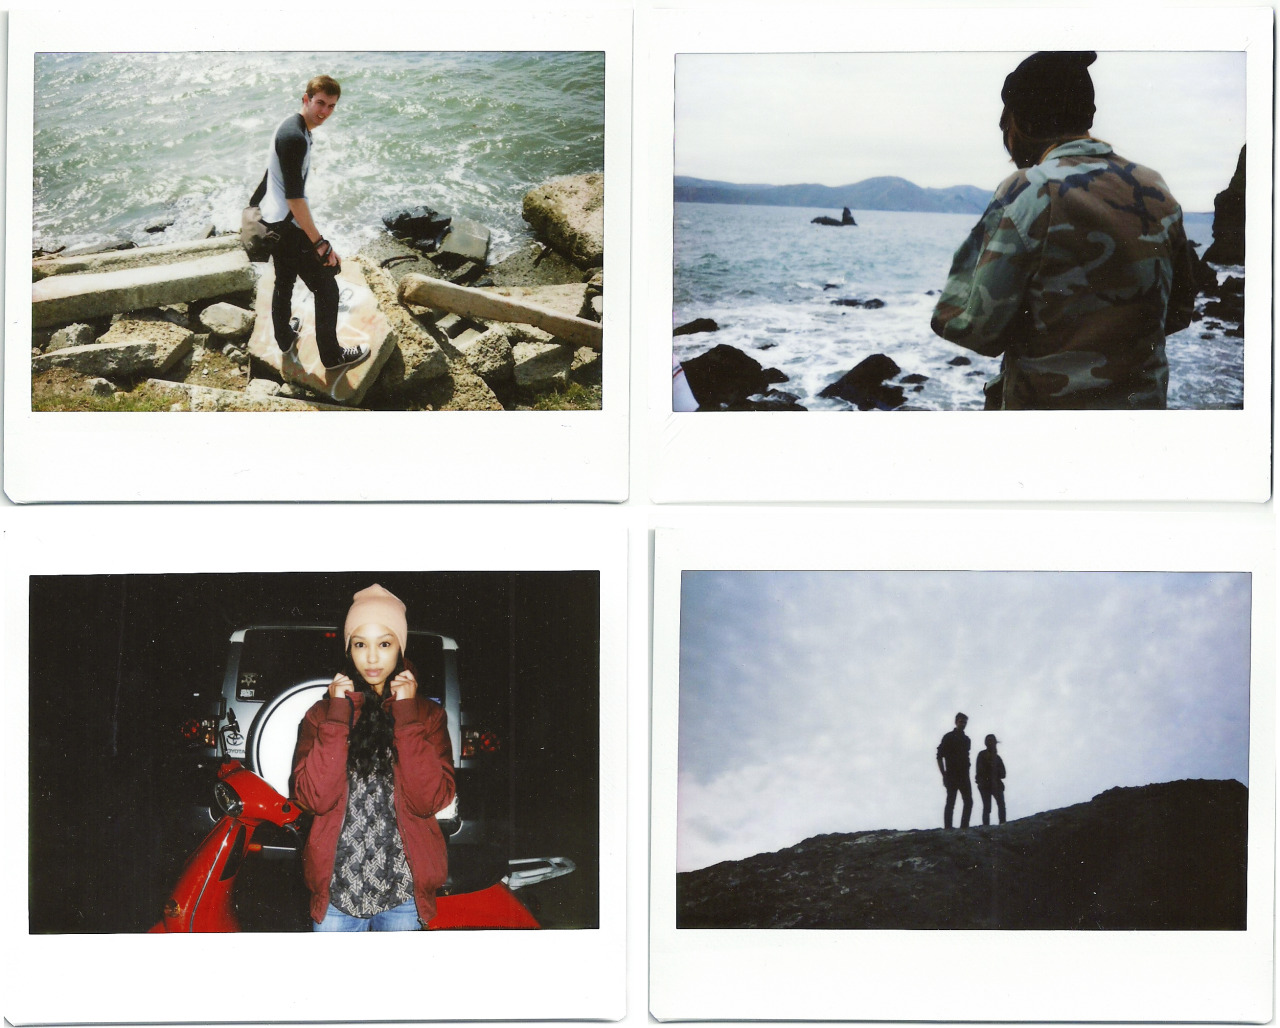 Some recent polaroids from my time on Spring Break.